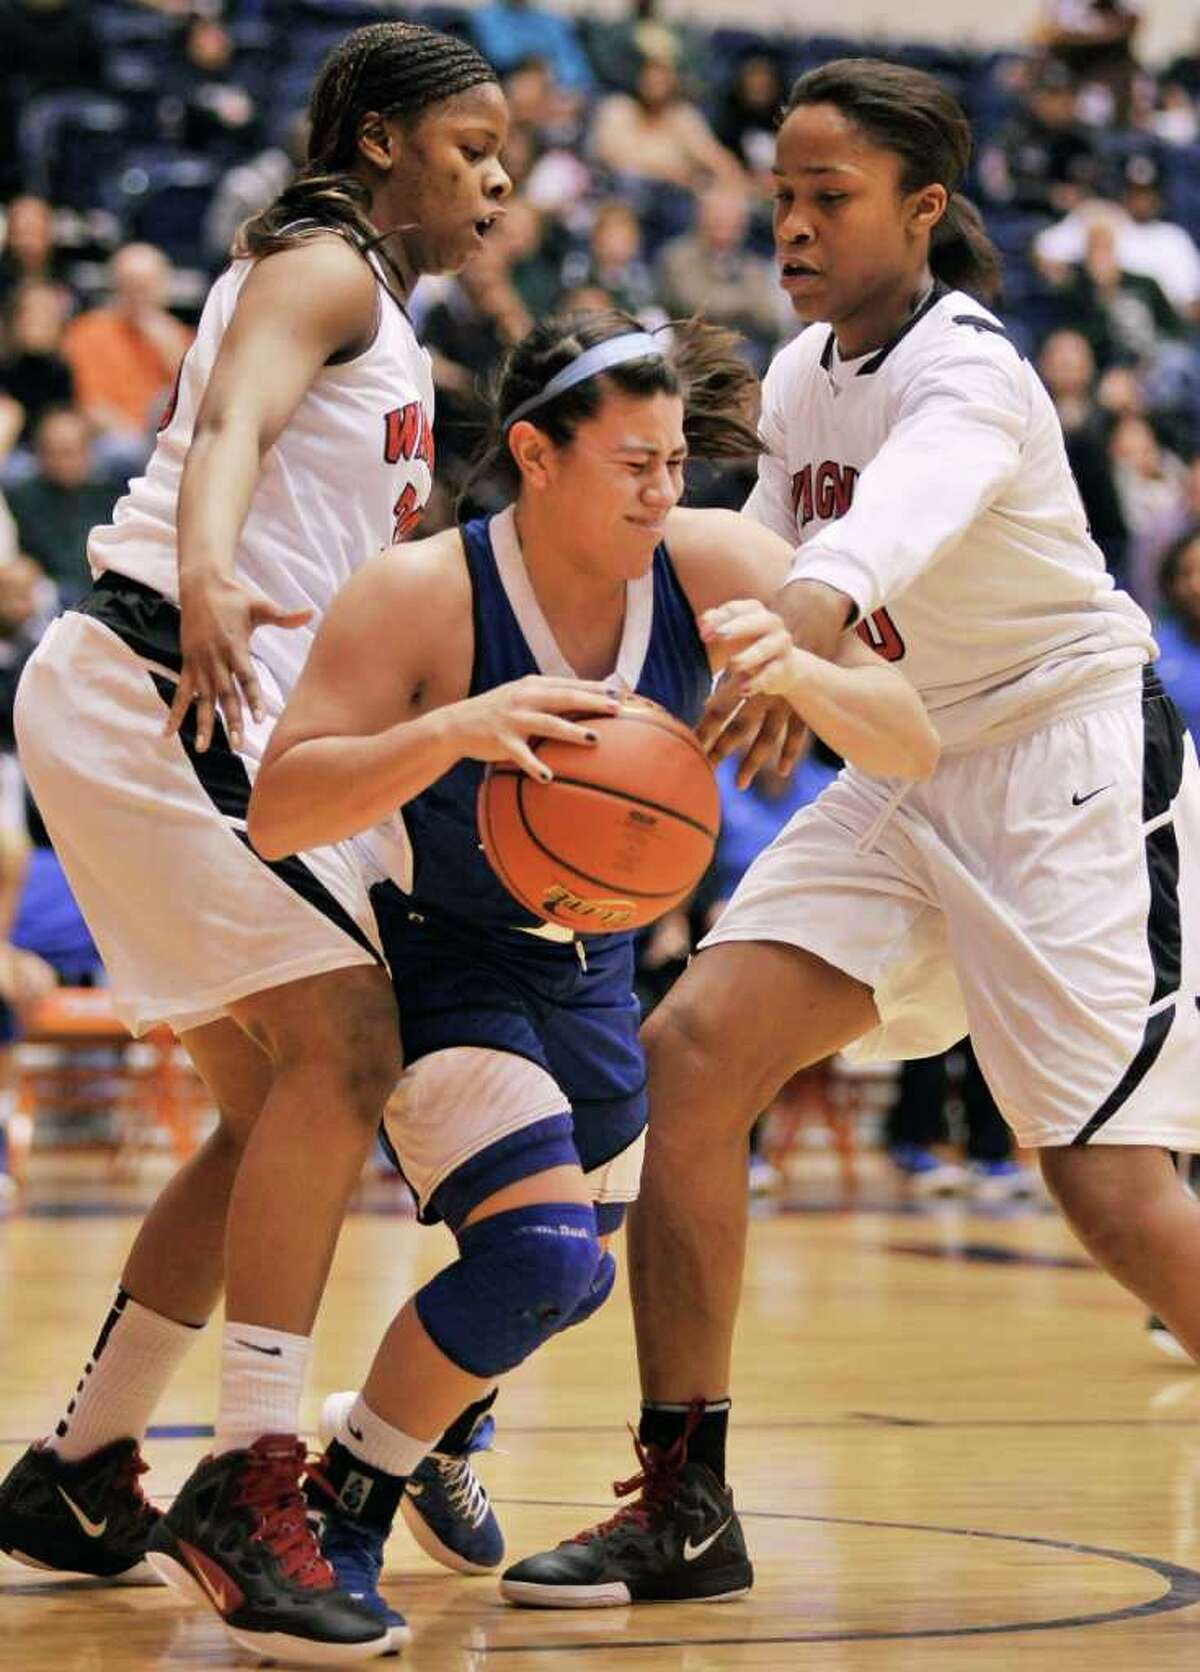 Wagner's Kaelynn Wilson (left) and Tesha Smith (right) try to strip the ball from Del Rio's Avianna Glavan during the first half their playoff game on Friday, Feb. 24, 2012, at UTSA. Wagner won 58-46.